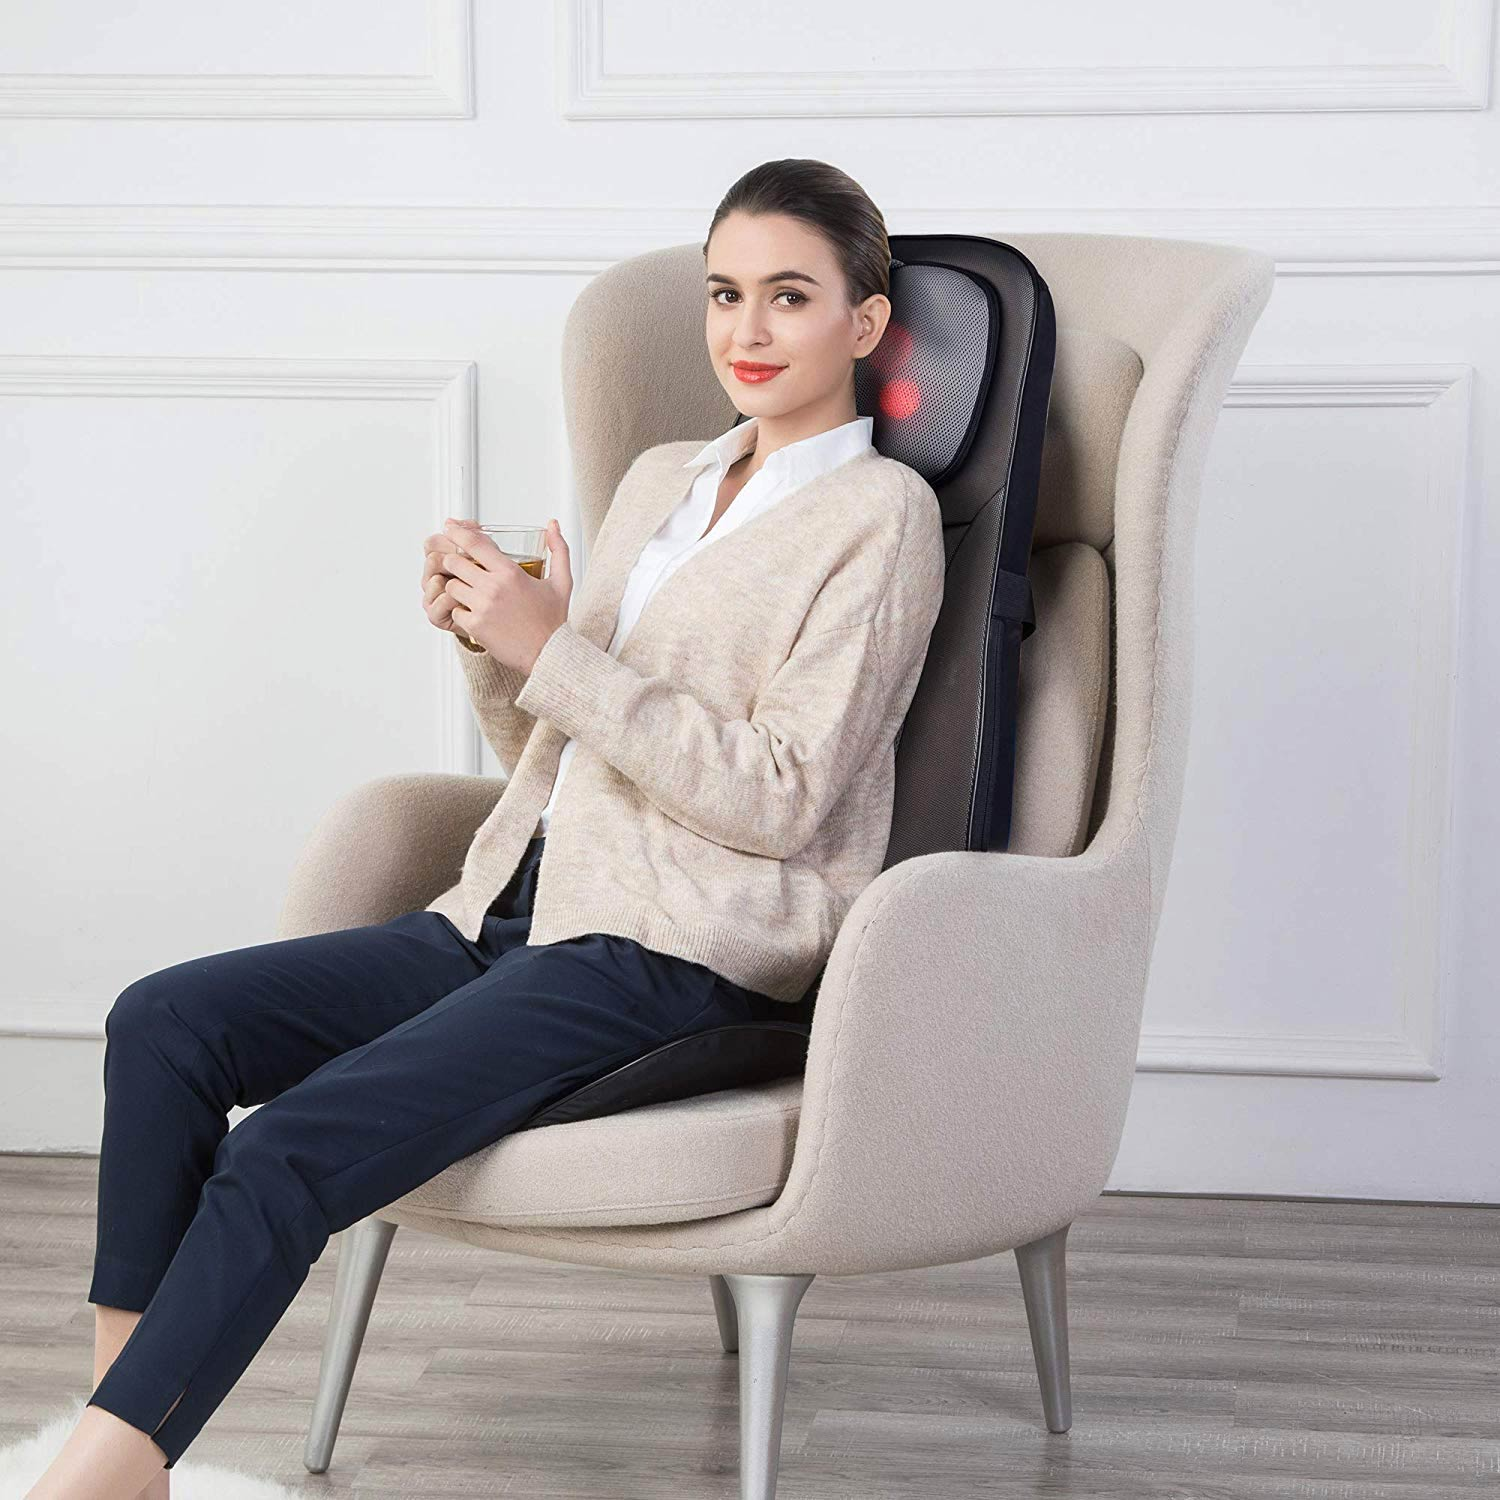 Woman sitting in chair with back massager